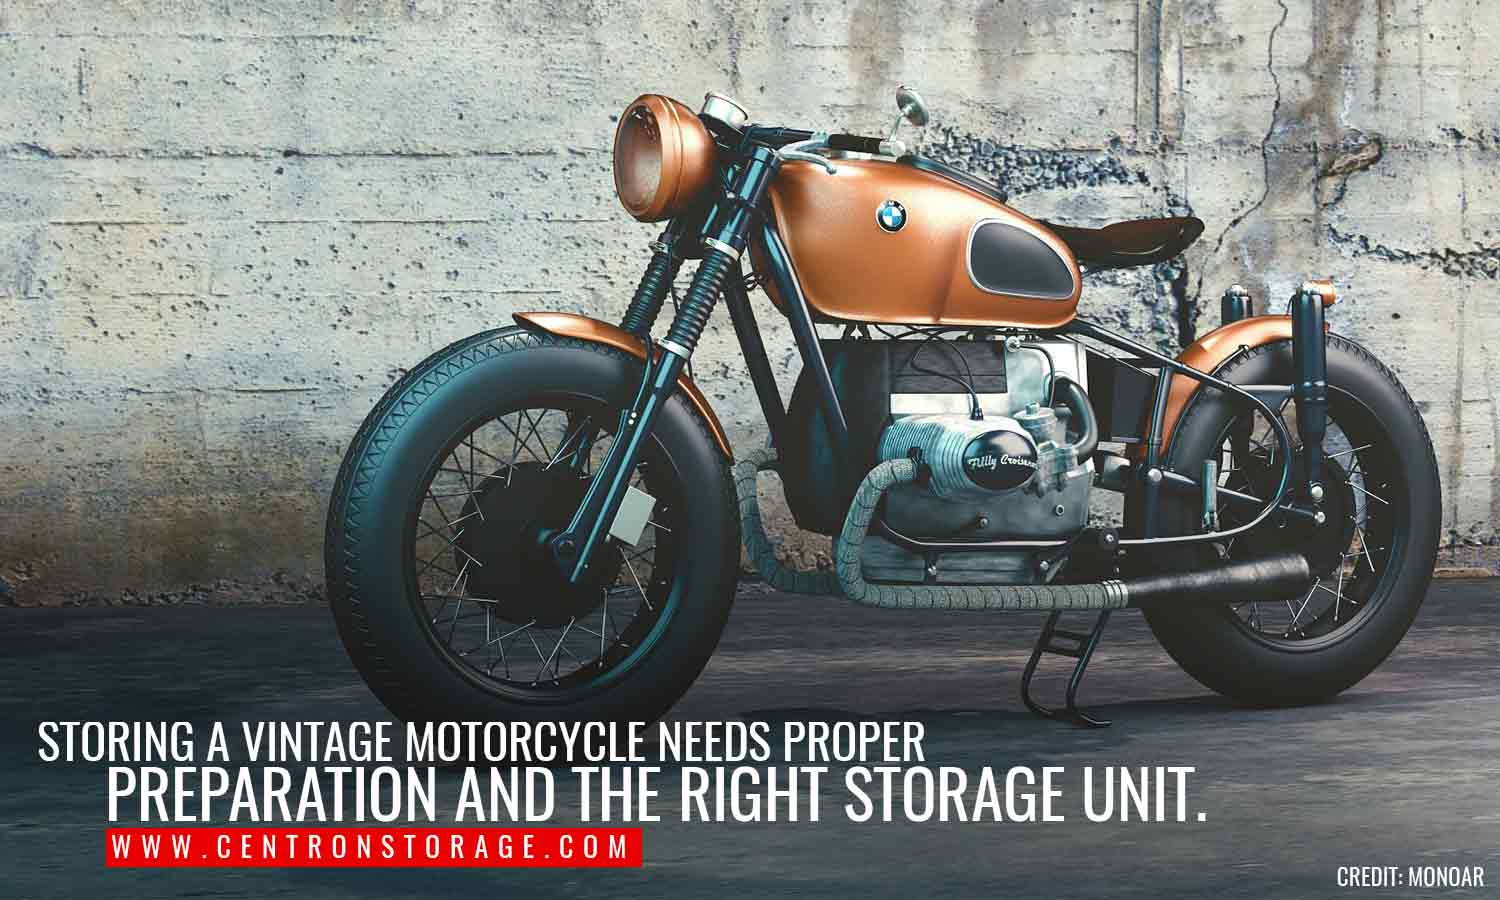 Storing a vintage motorcycle needs proper preparation and the right storage unit.